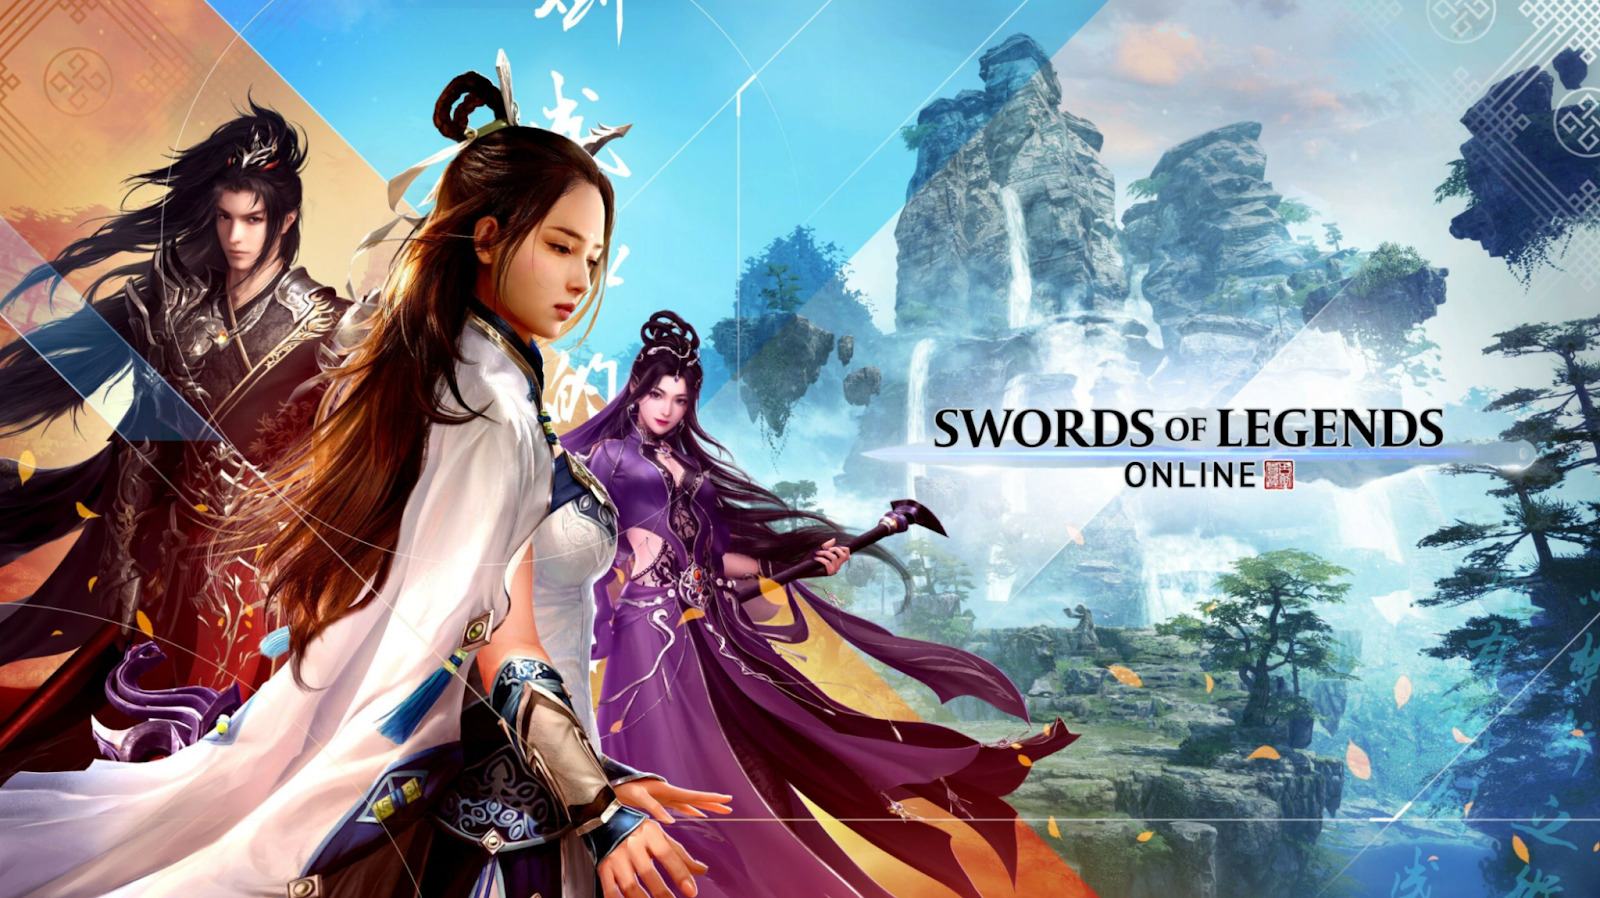 swords of legends, swords of legends online, cd key, mmorpg, solo mmorpg, china mmorpg, beauty graphics, price comparison, best price, game deal, game deals, video game price comparison, game code, game key, buy key code, buy game key, price compare, best game deals, best game deal, Sword Online Key, cdkey deal, cdkey buy, sword legends key, game code price, download game, free games, preview, release date, where to buy, best price buy,